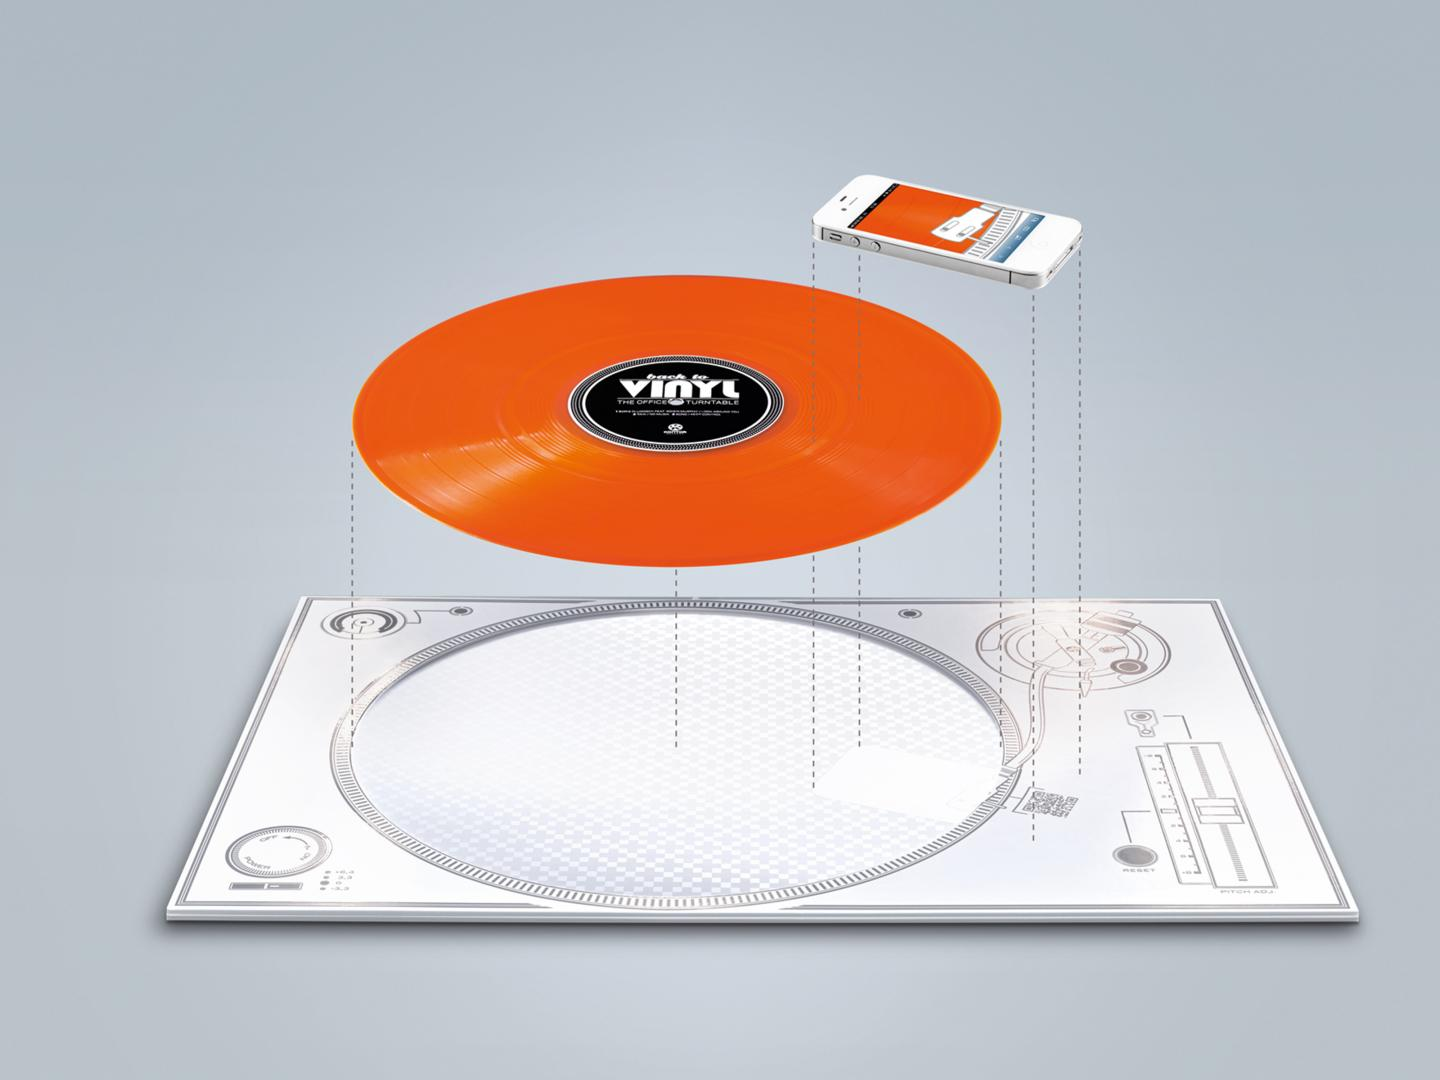 Back to Vinyl - The Office Turntable Thumbnail